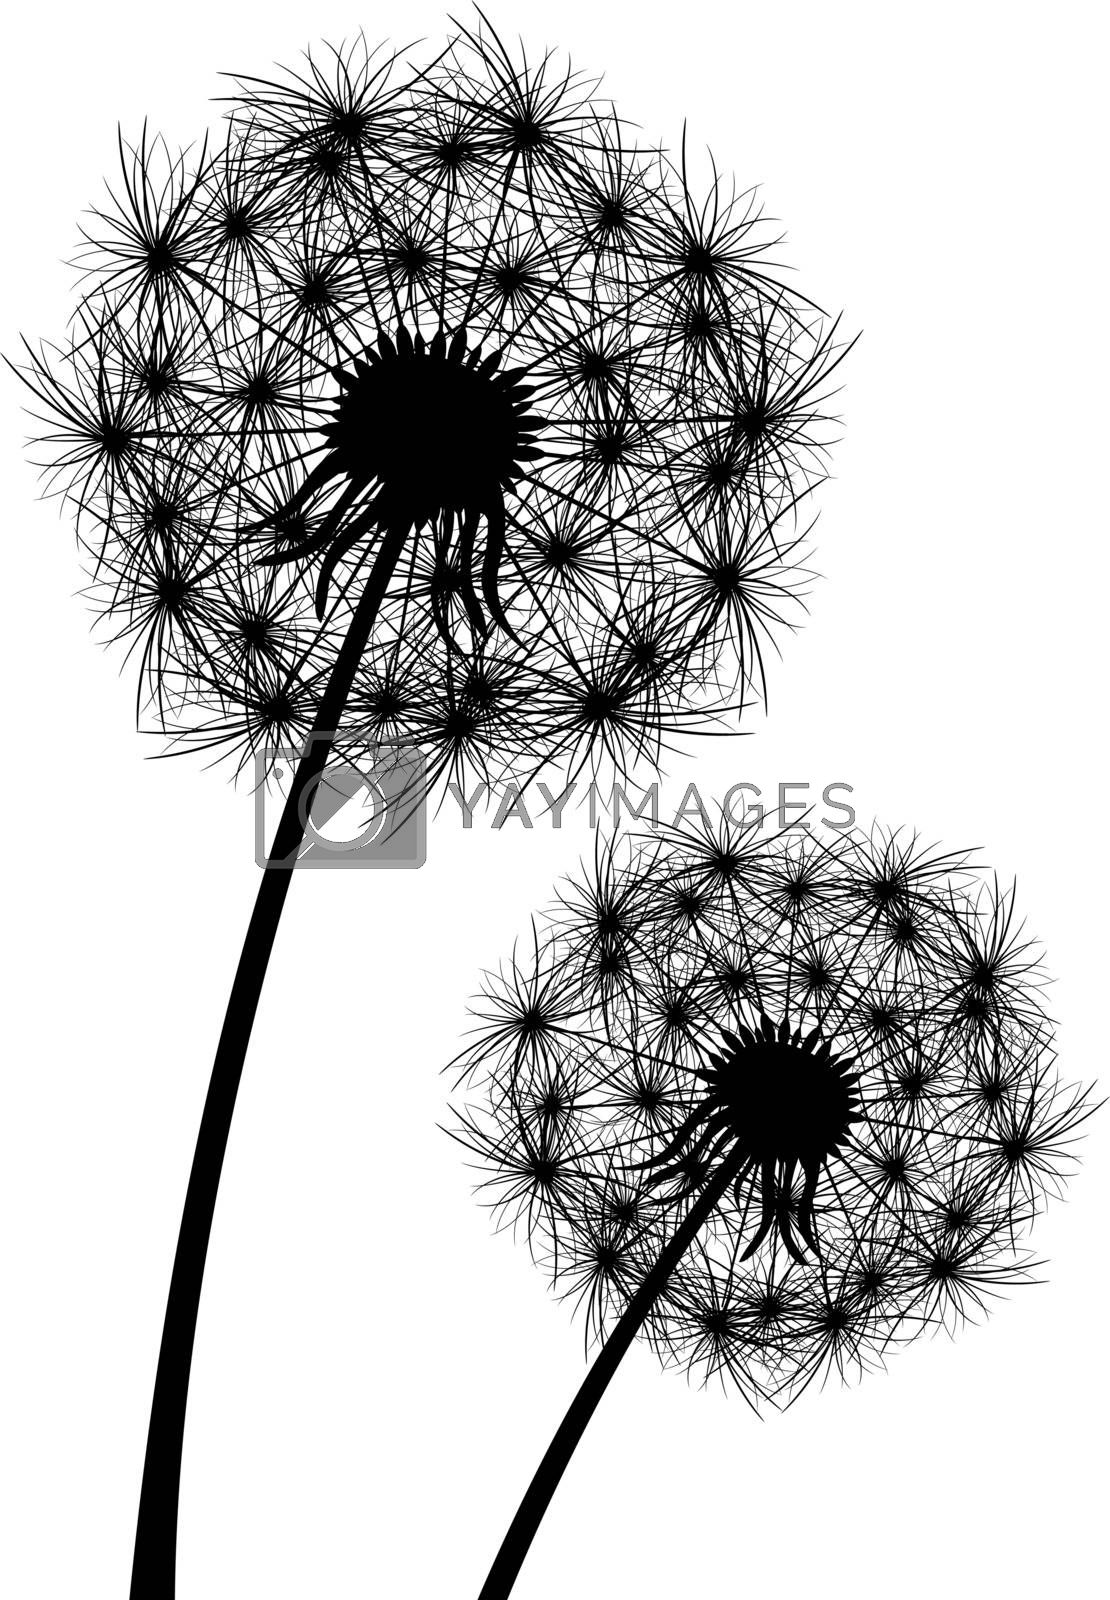 Dandelion, flowering  plant. Silhouette of dandelion on white background.